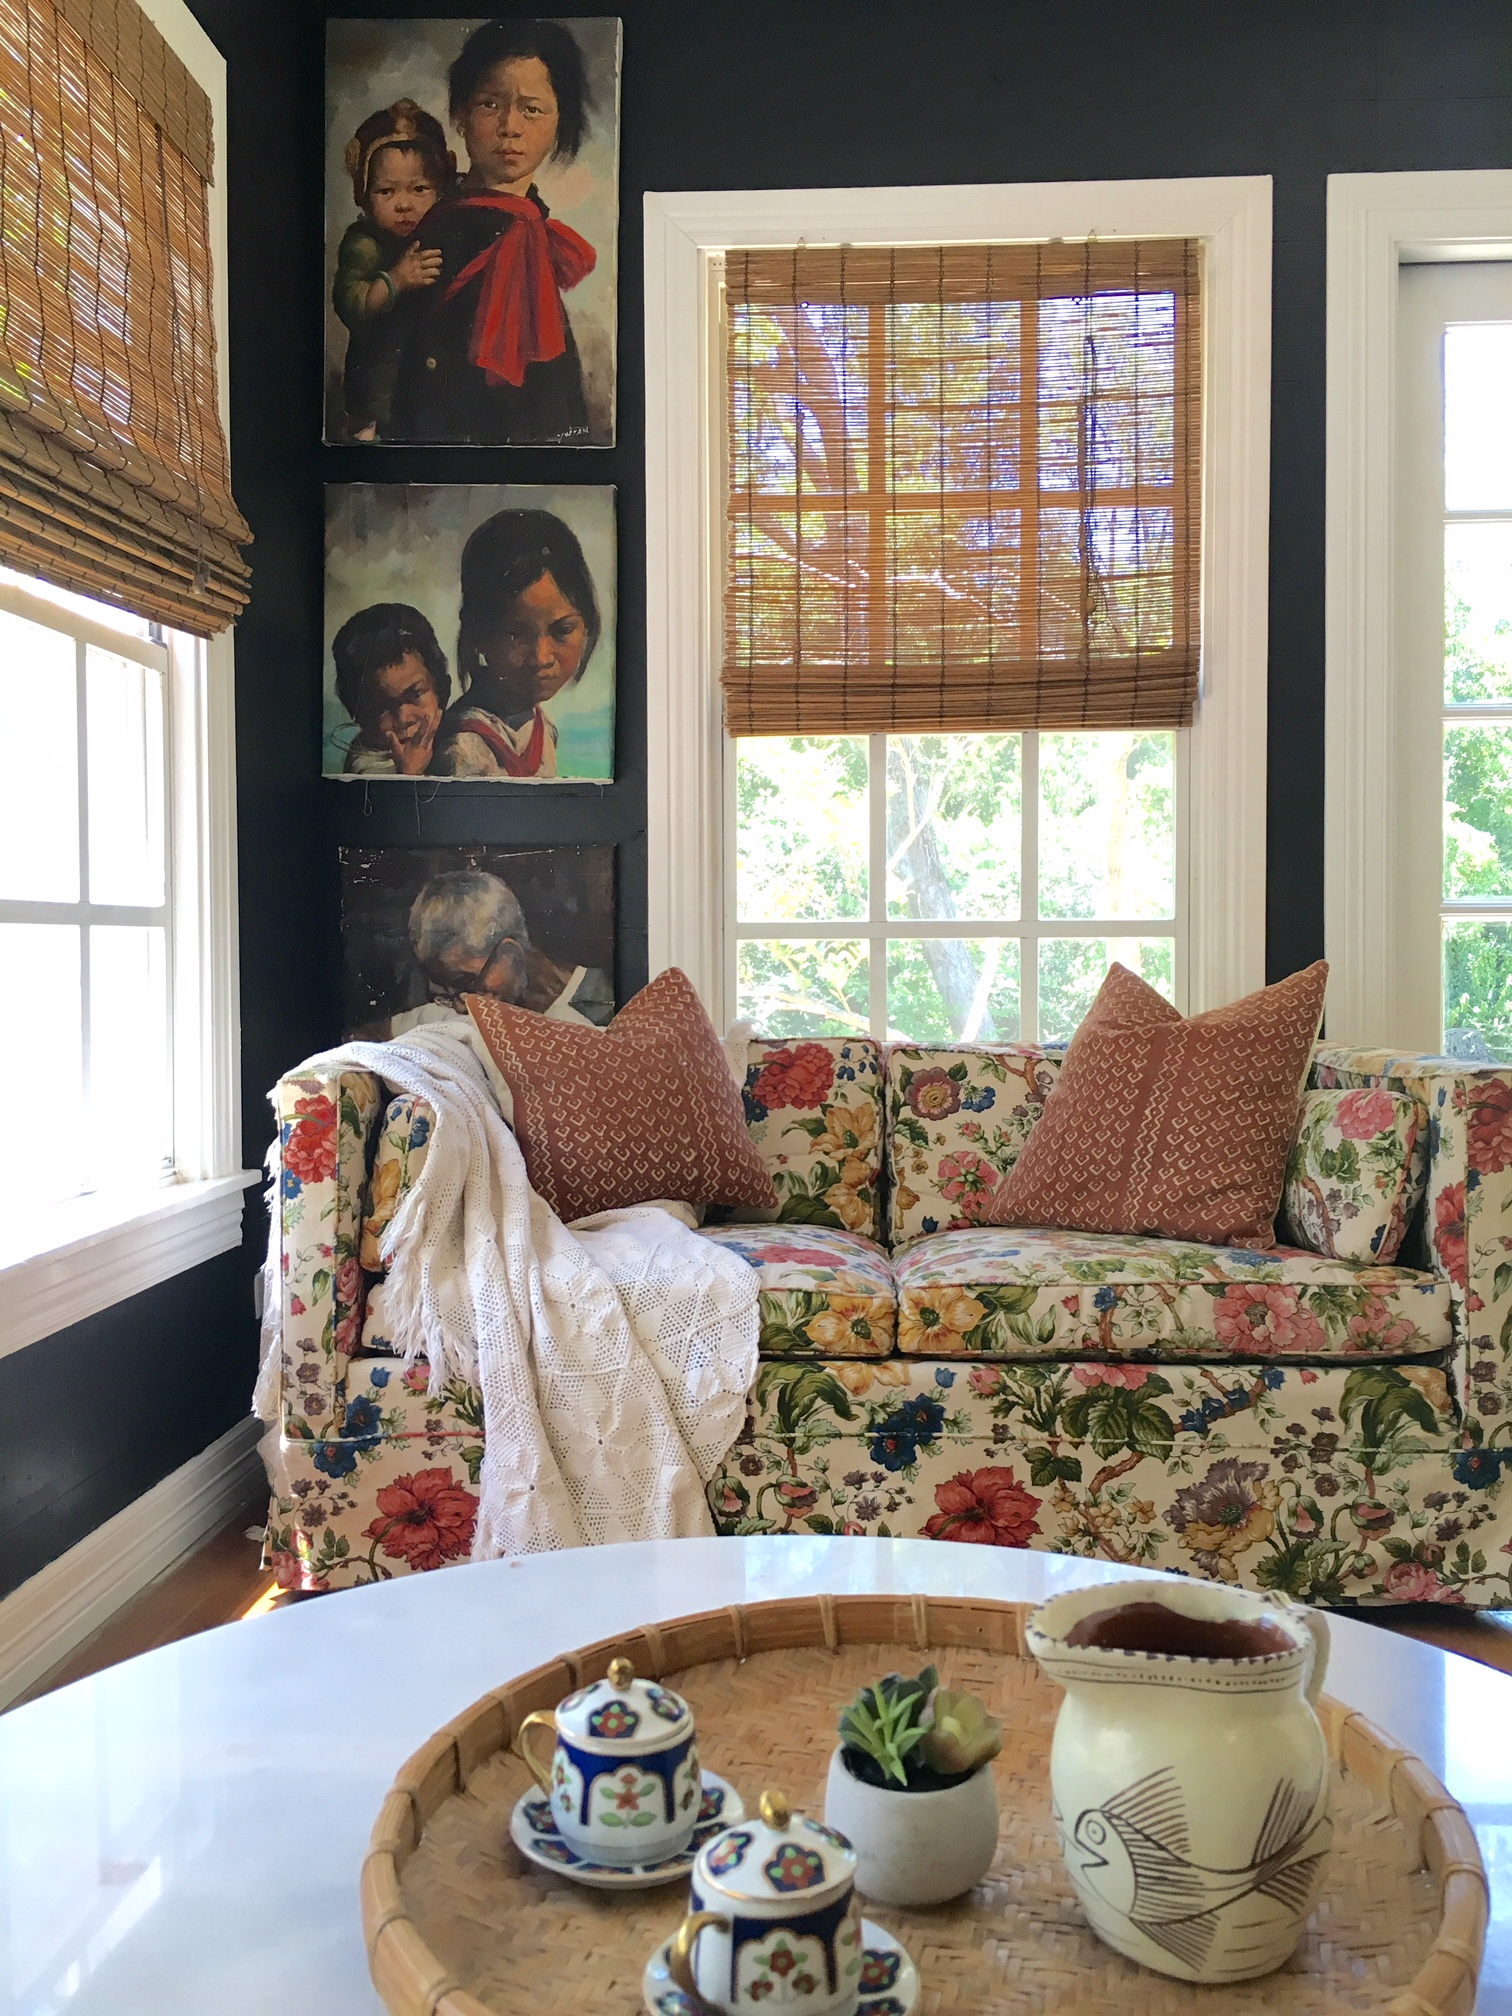 Want to find a $50 flowertastic couch and $9 set of vintage paintings? Then read on my friends.